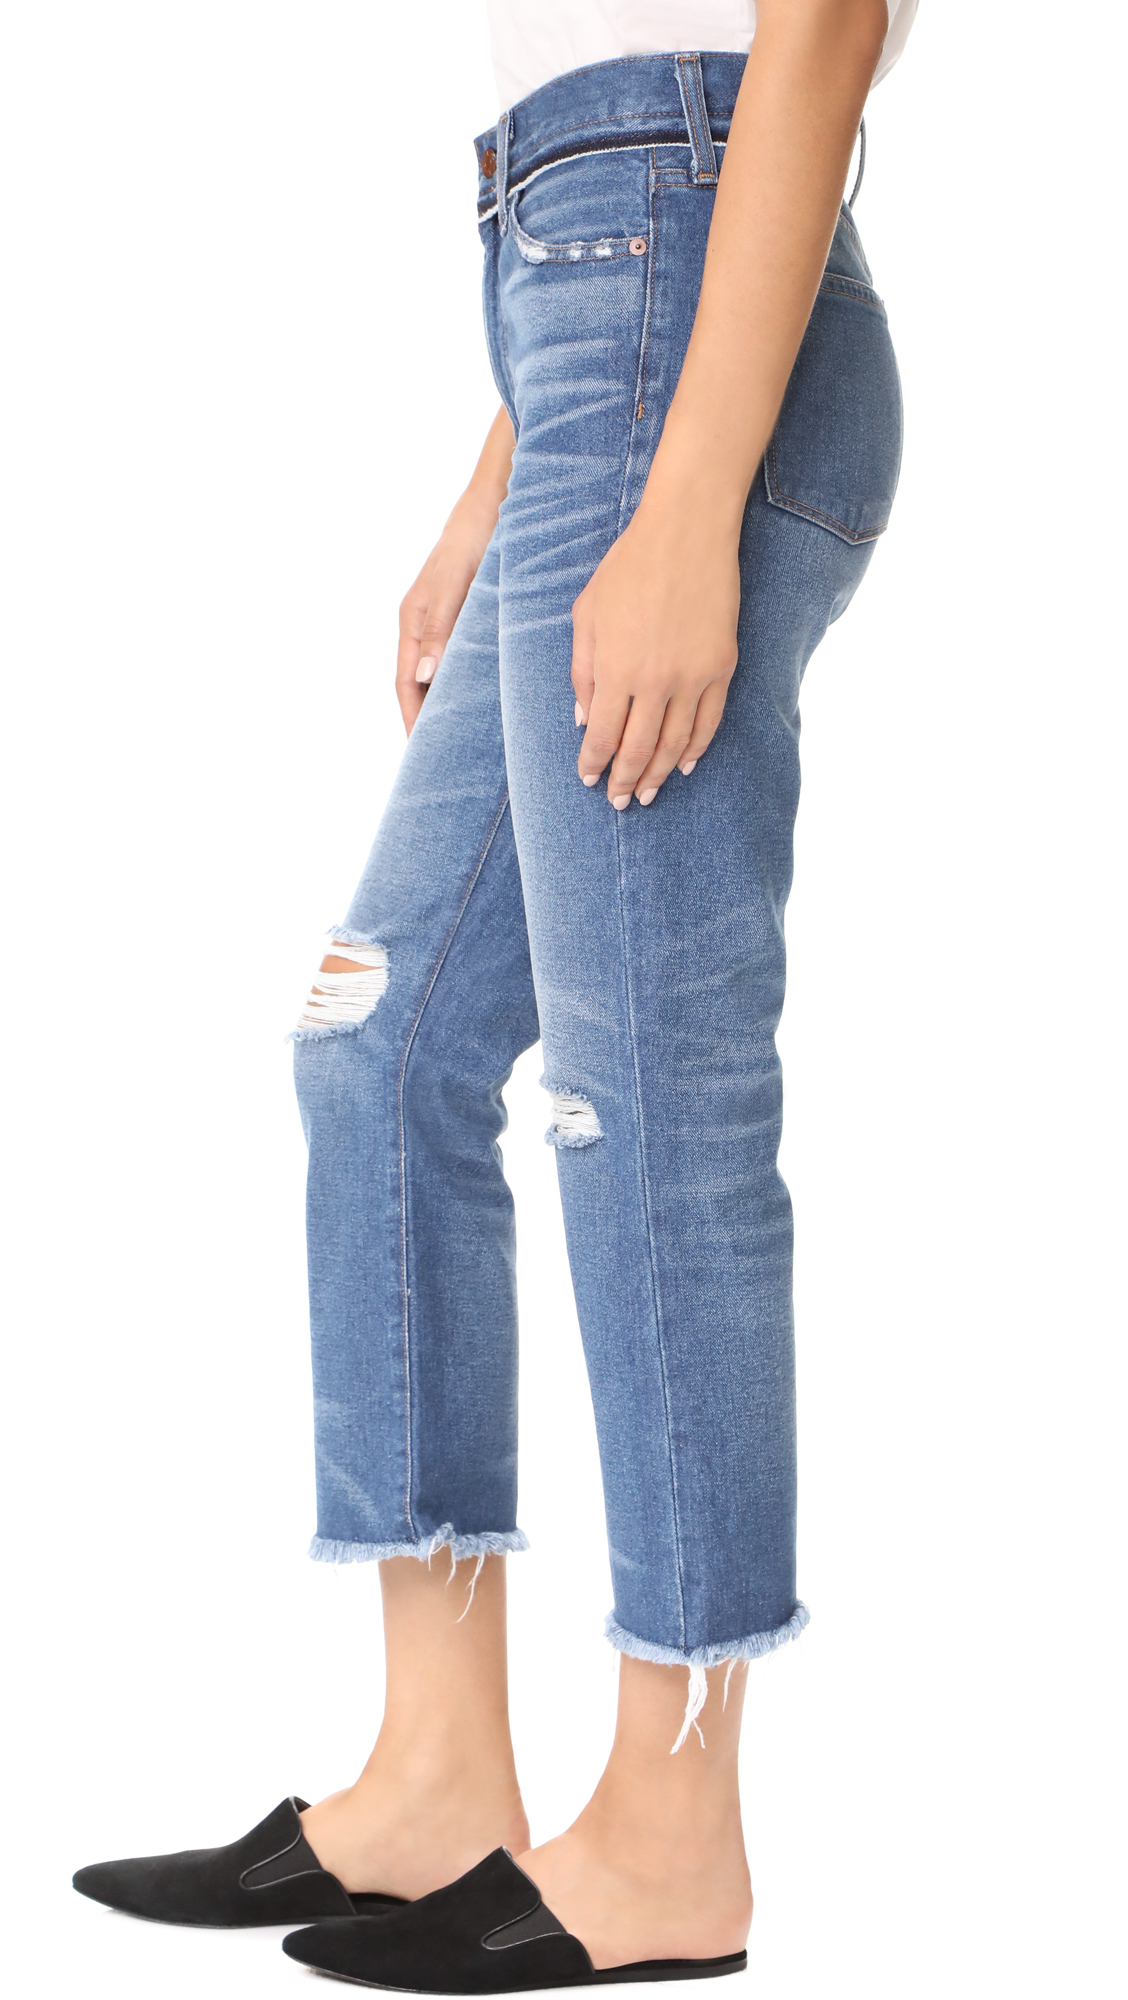 91354f09c9a Madewell Retro Cropped Bootcut Jeans With Ripped Knees   SHOPBOP